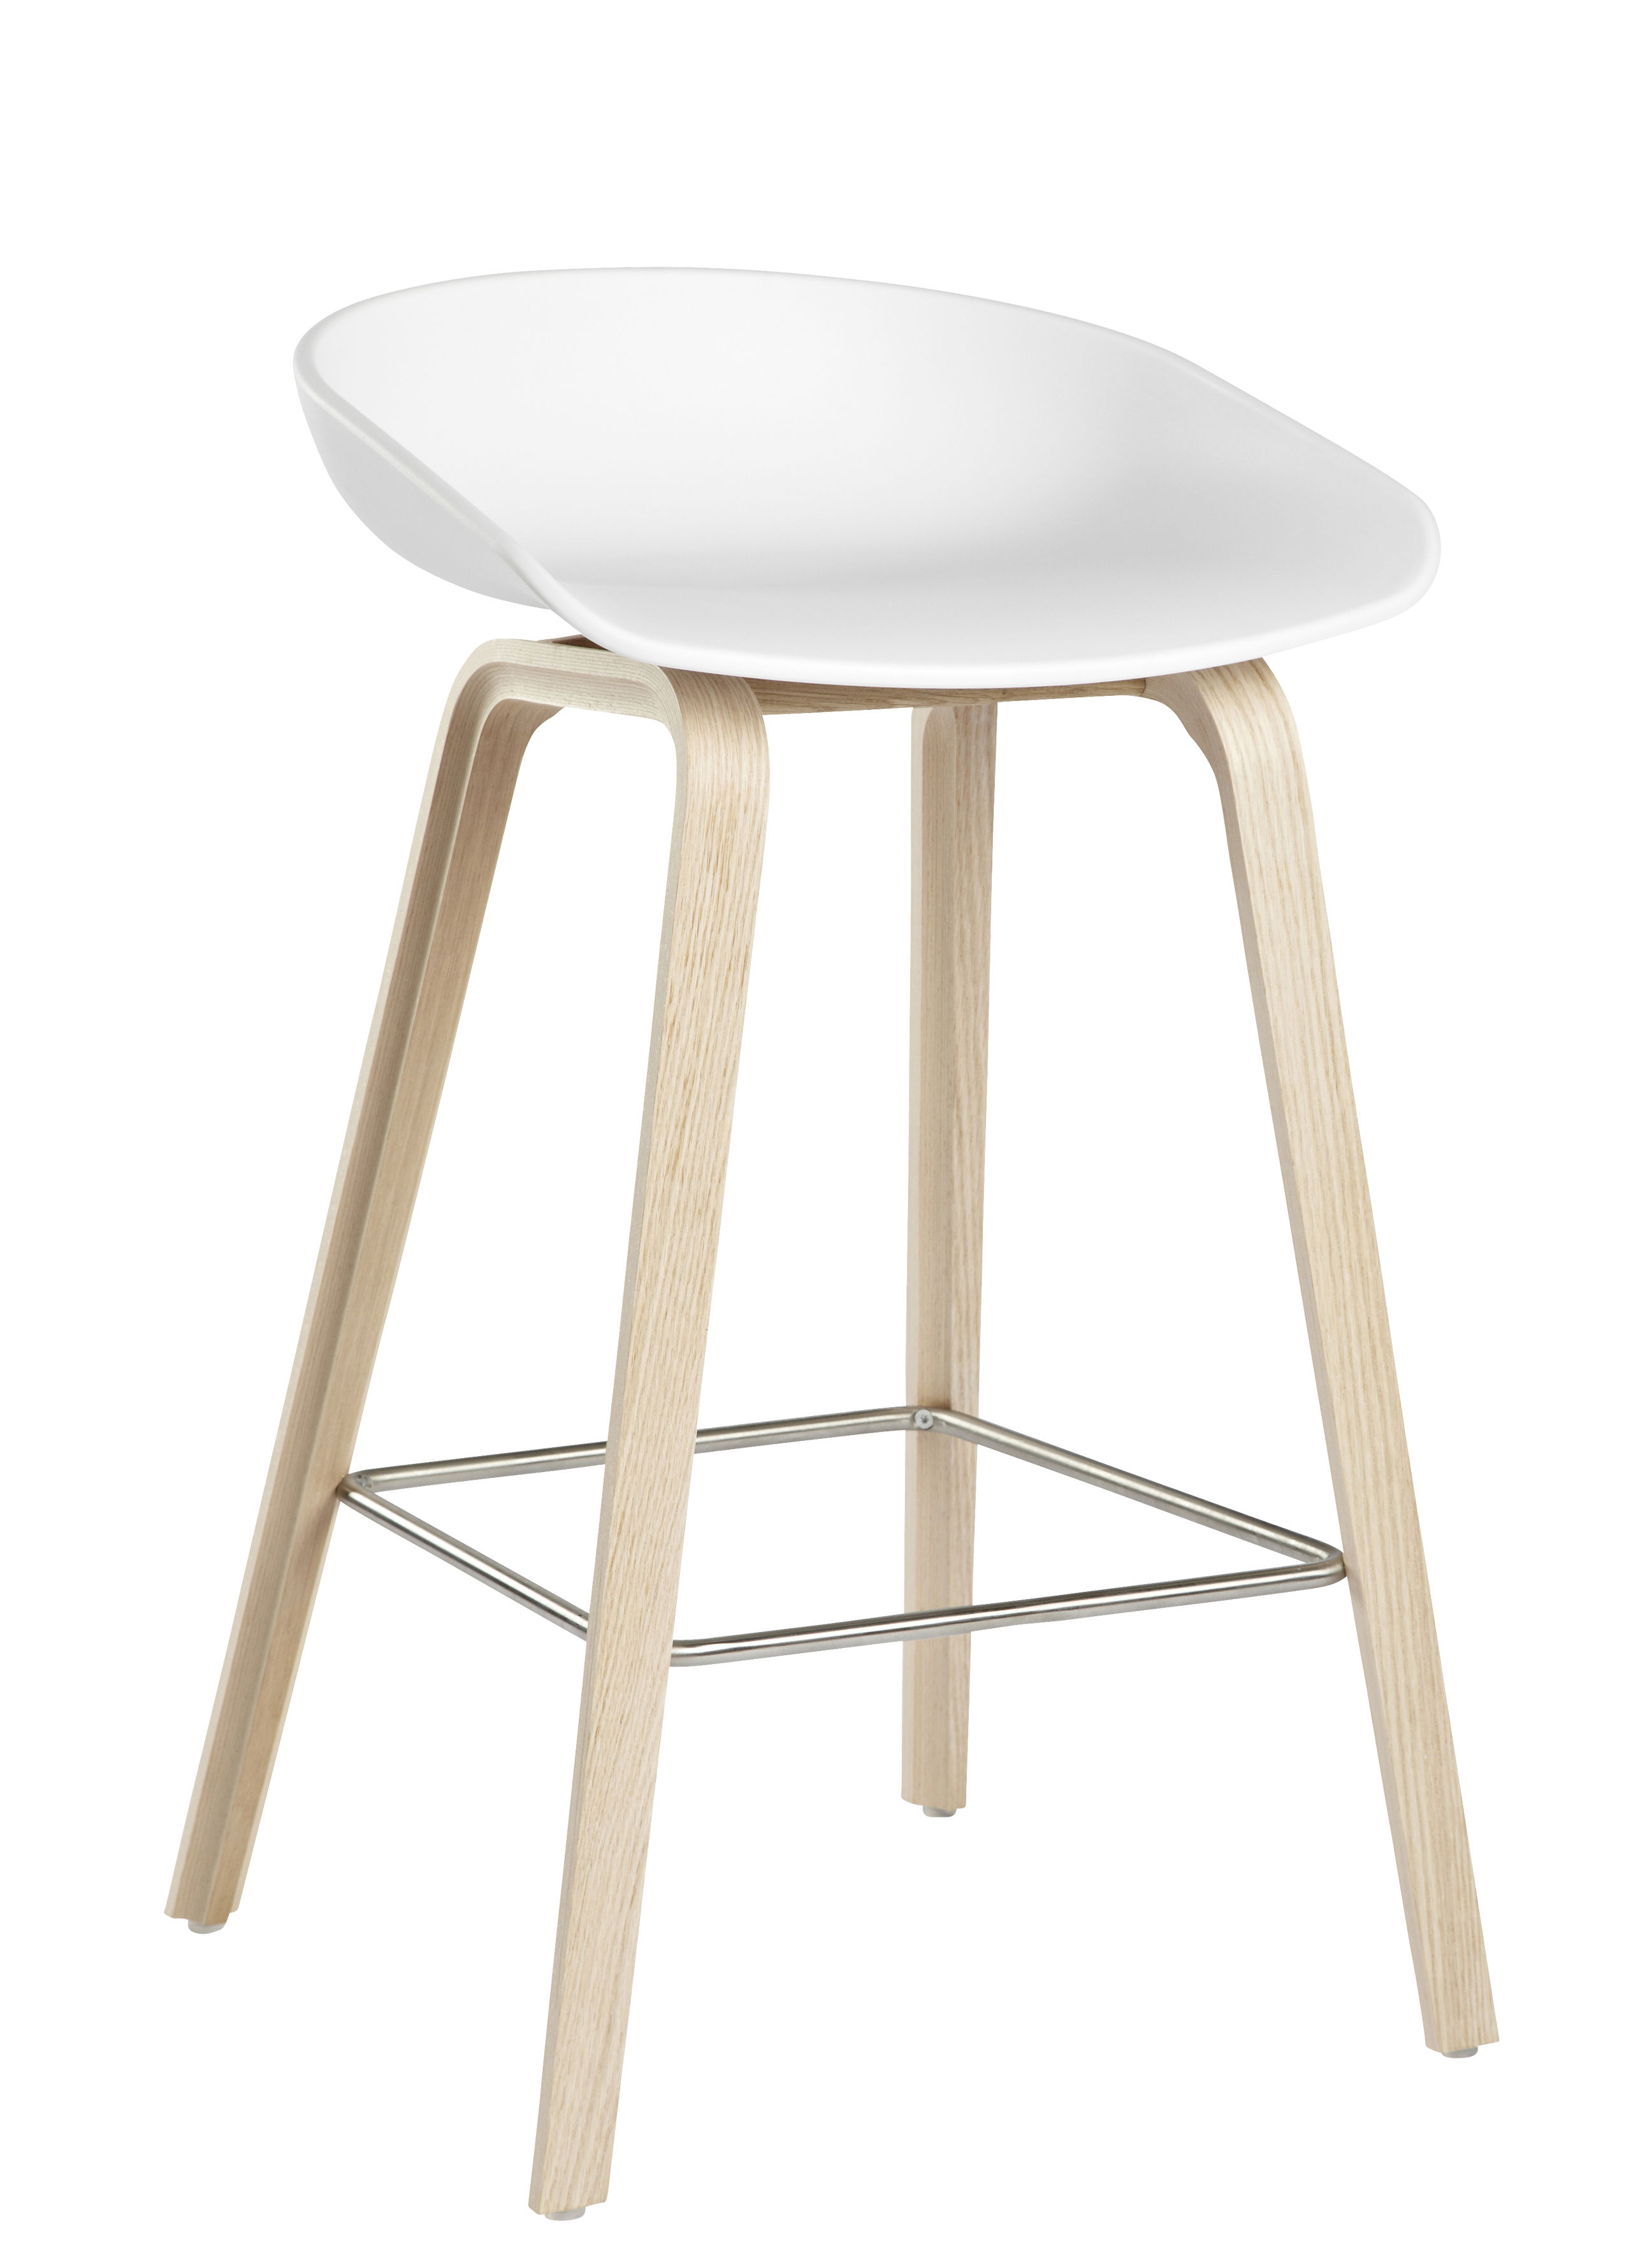 Furniture - Bar Stools - About a stool AAS 32 Bar stool - H 65 cm - Plastic & wood legs by Hay - White / Natural wood legs - Natural oak, Polypropylene